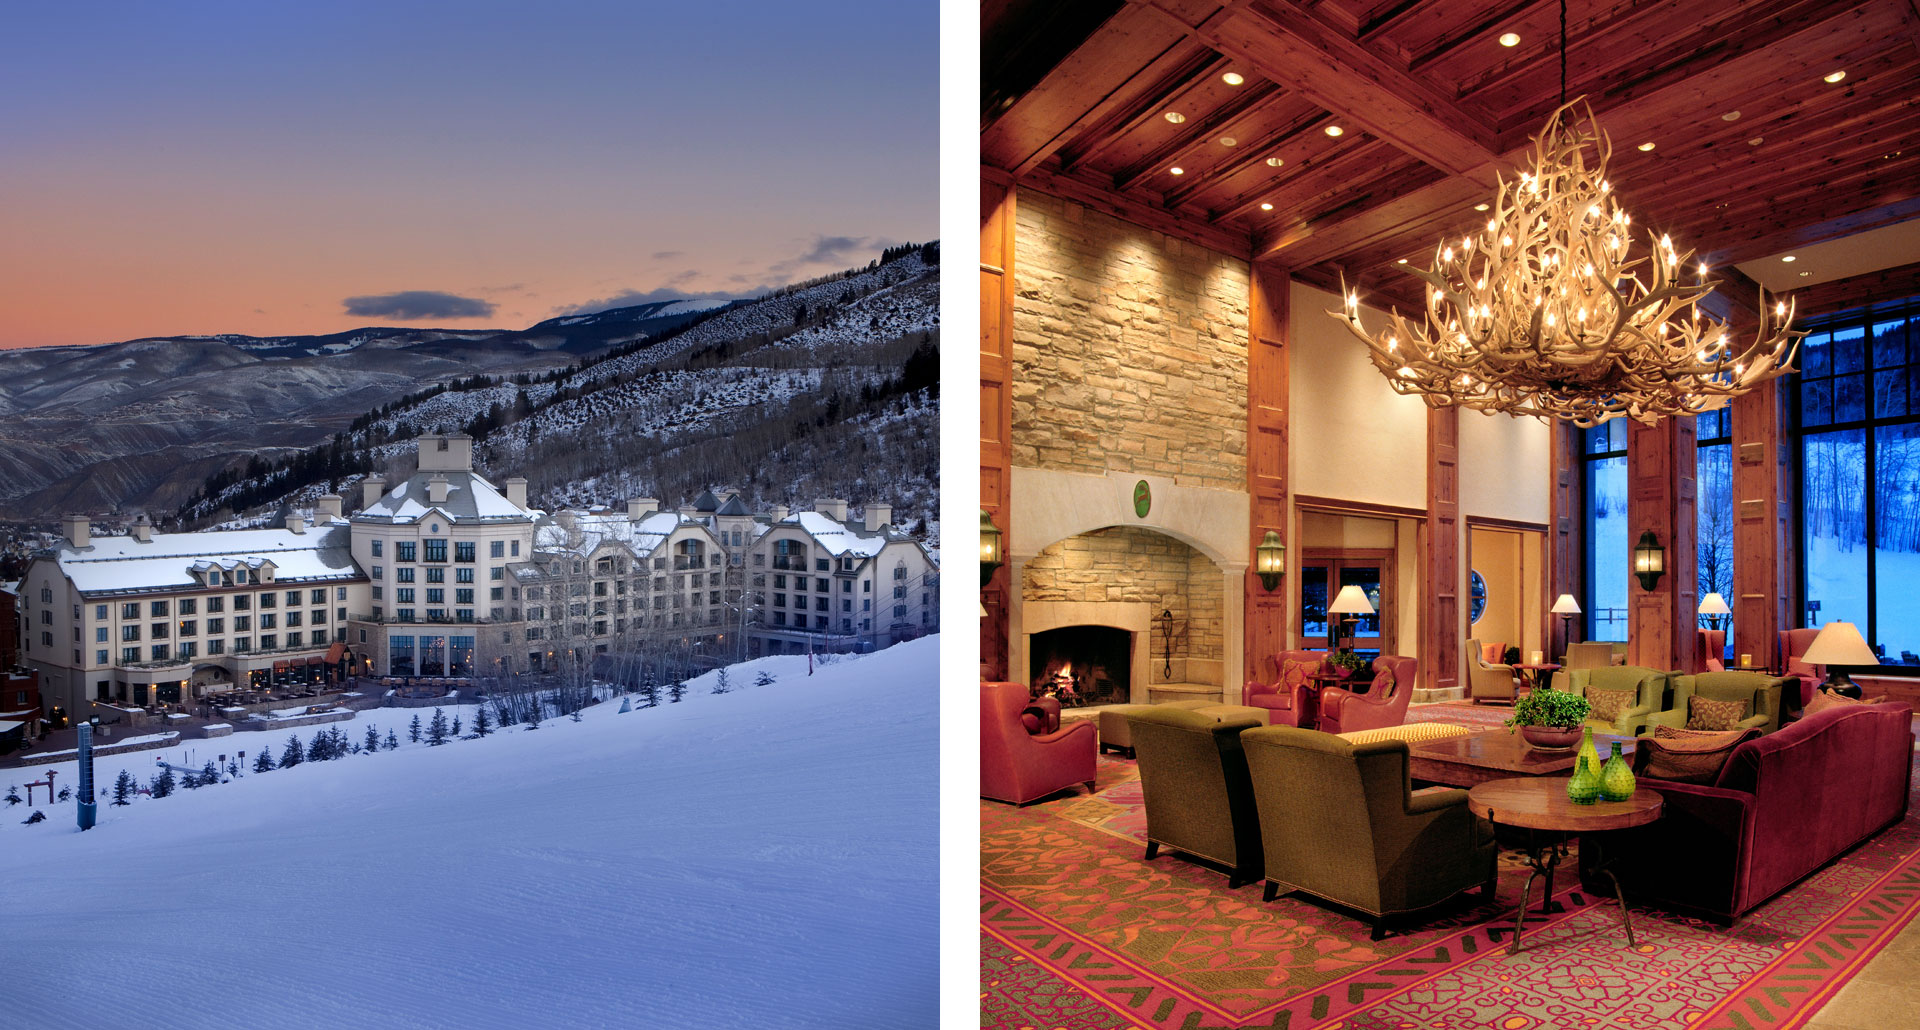 PARK HYATT BEAVER CREEK RESORT AND SPA - boutique hotel in Beaver Creek